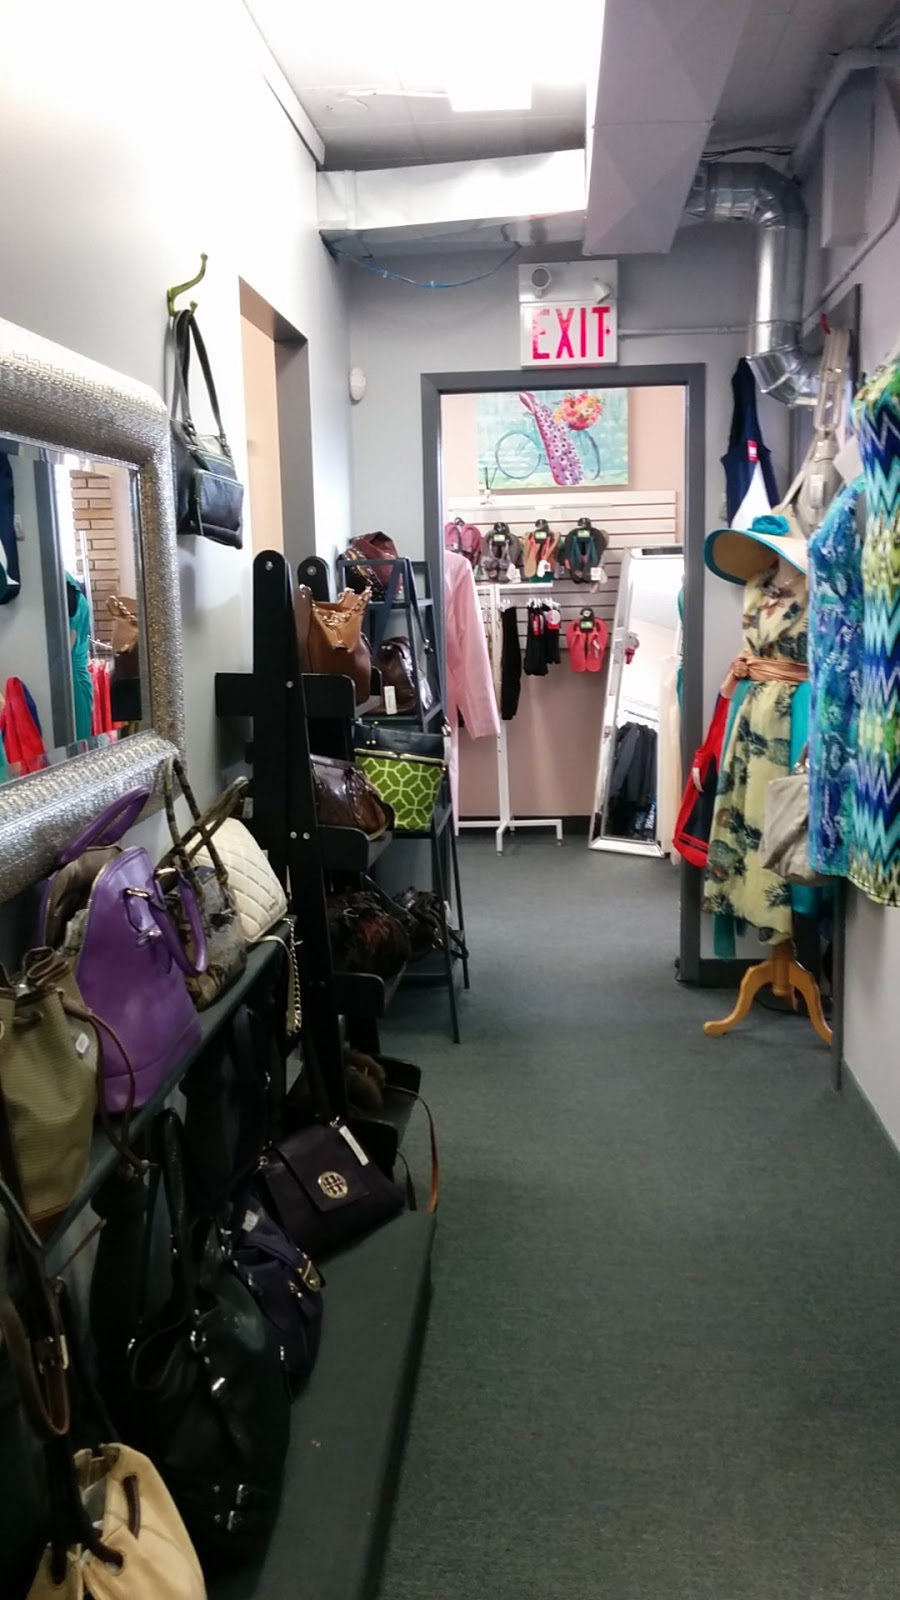 Carousel Clothing | clothing store | 72 St Leger St, Kitchener, ON N2H 6R4, Canada | 5195764990 OR +1 519-576-4990